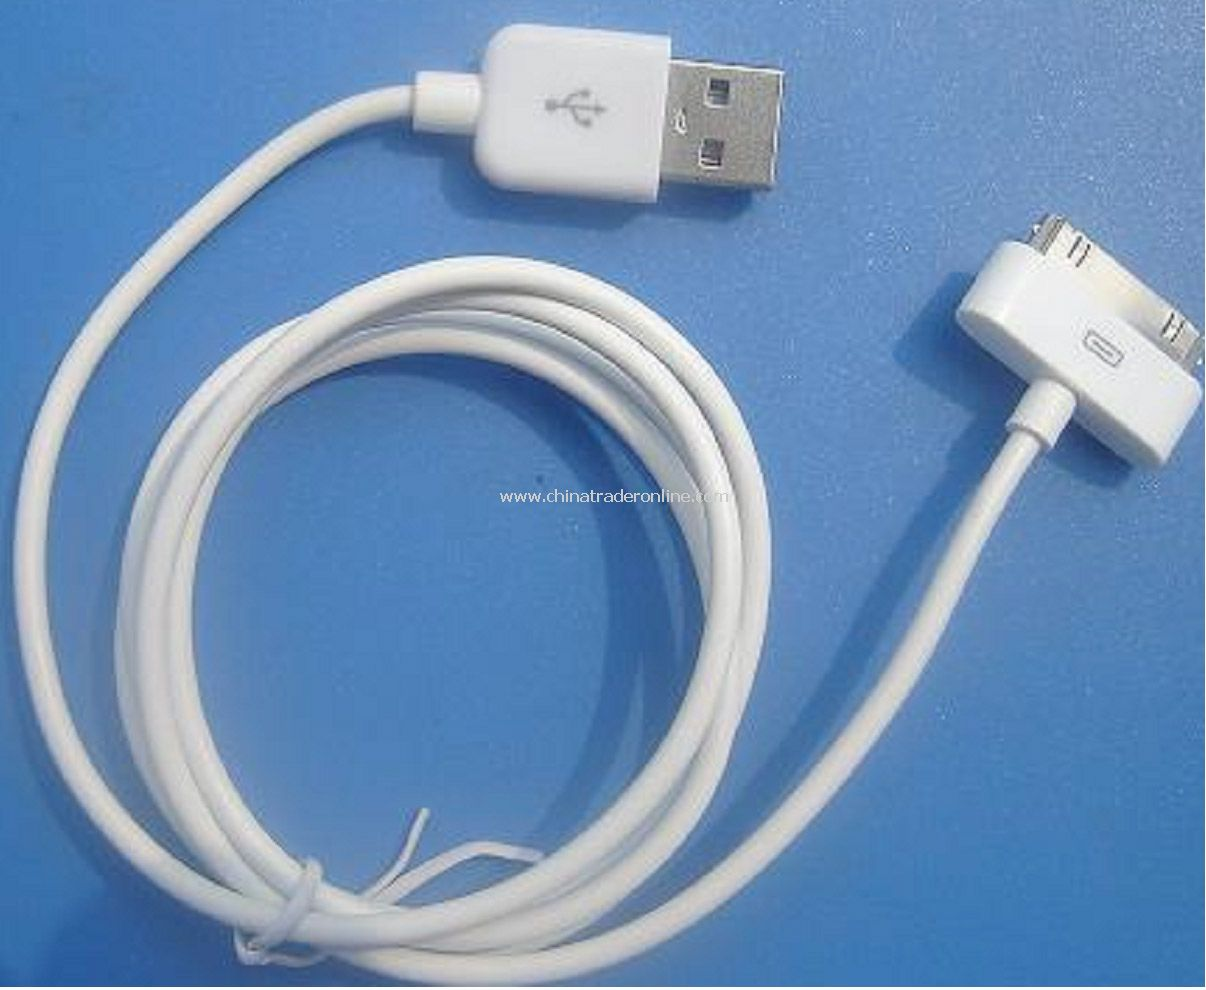 USB Cable for iPhone (Small Connector)